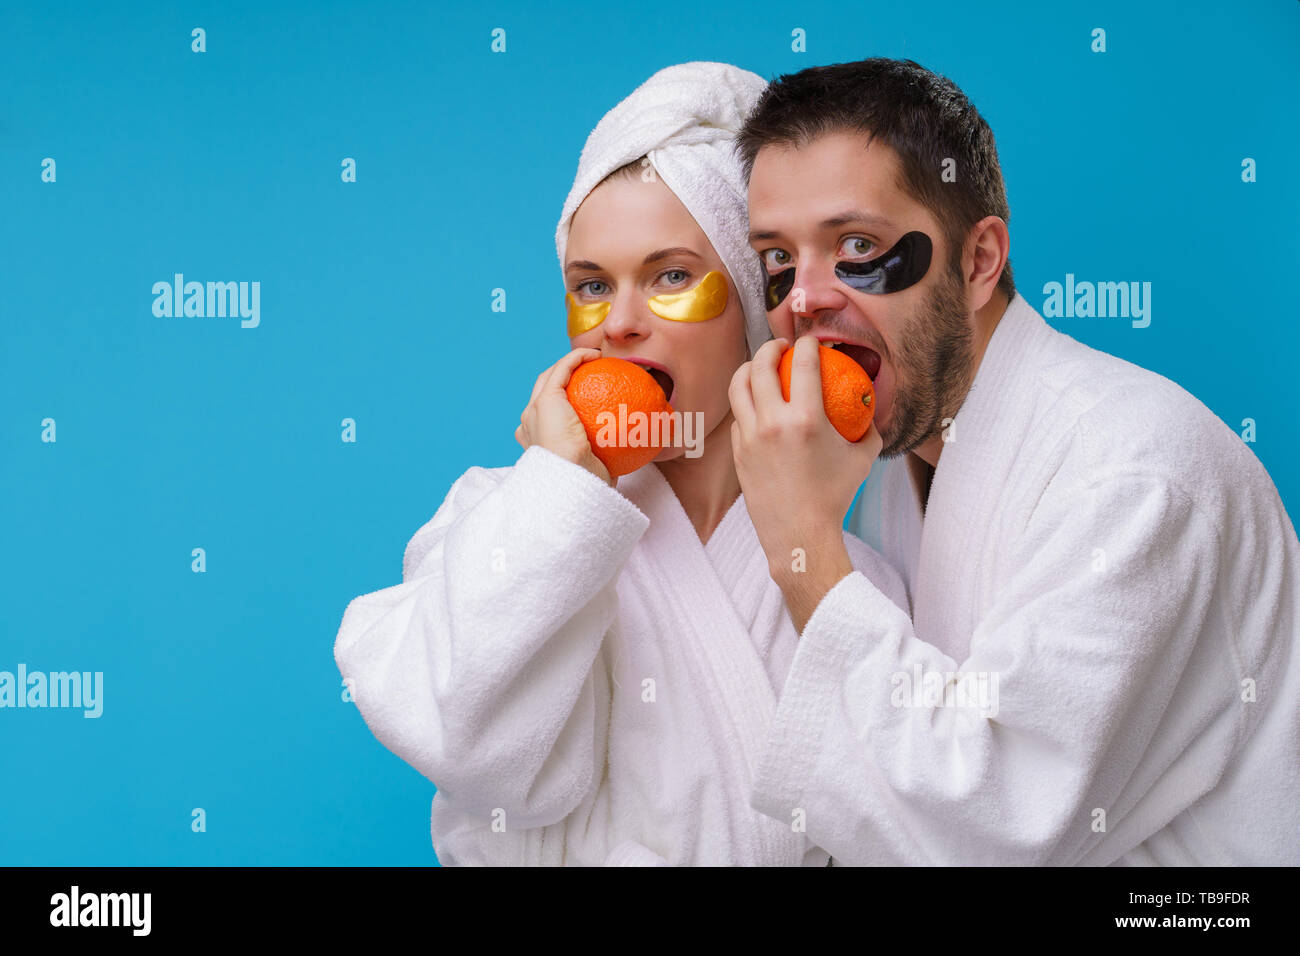 Photo of man and woman with gel pads under eyes and in white robe biting oranges - Stock Image